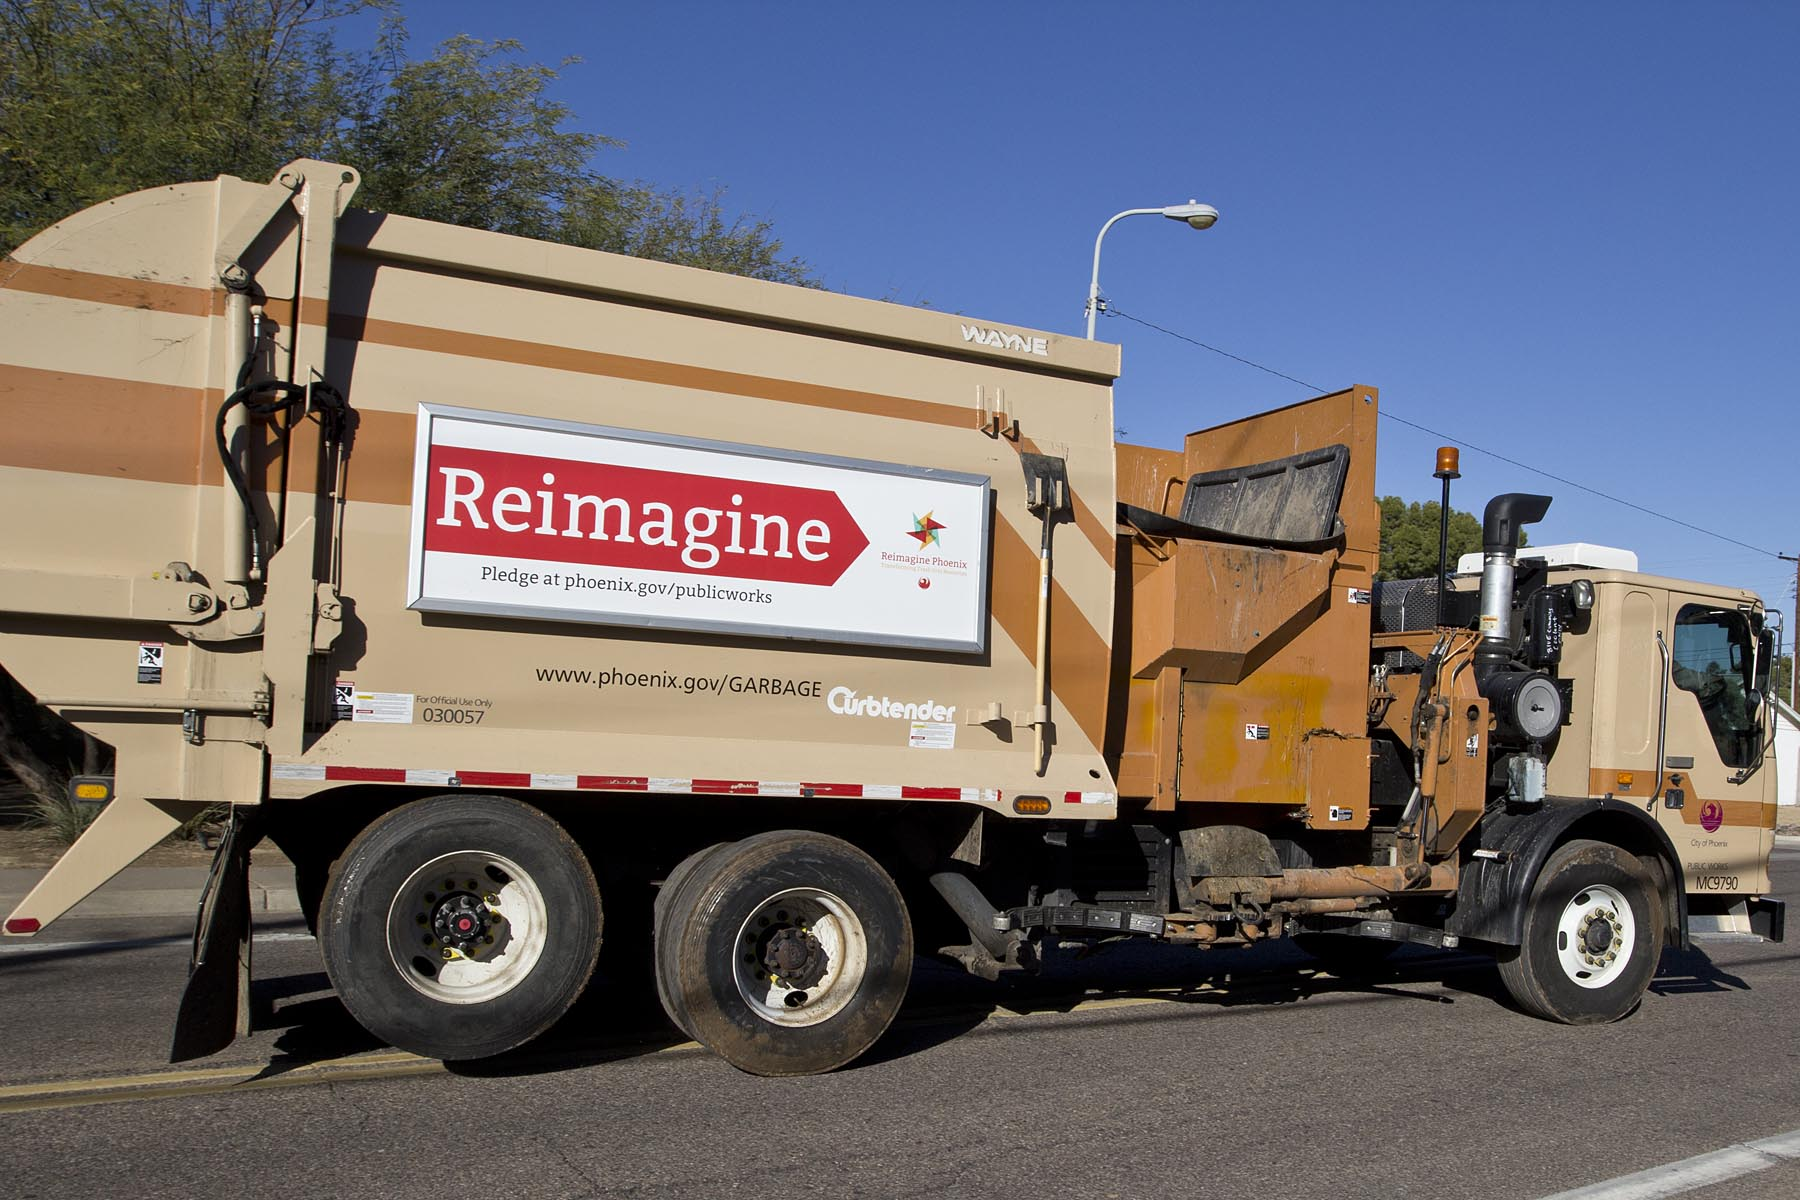 Reimagine recycle truck